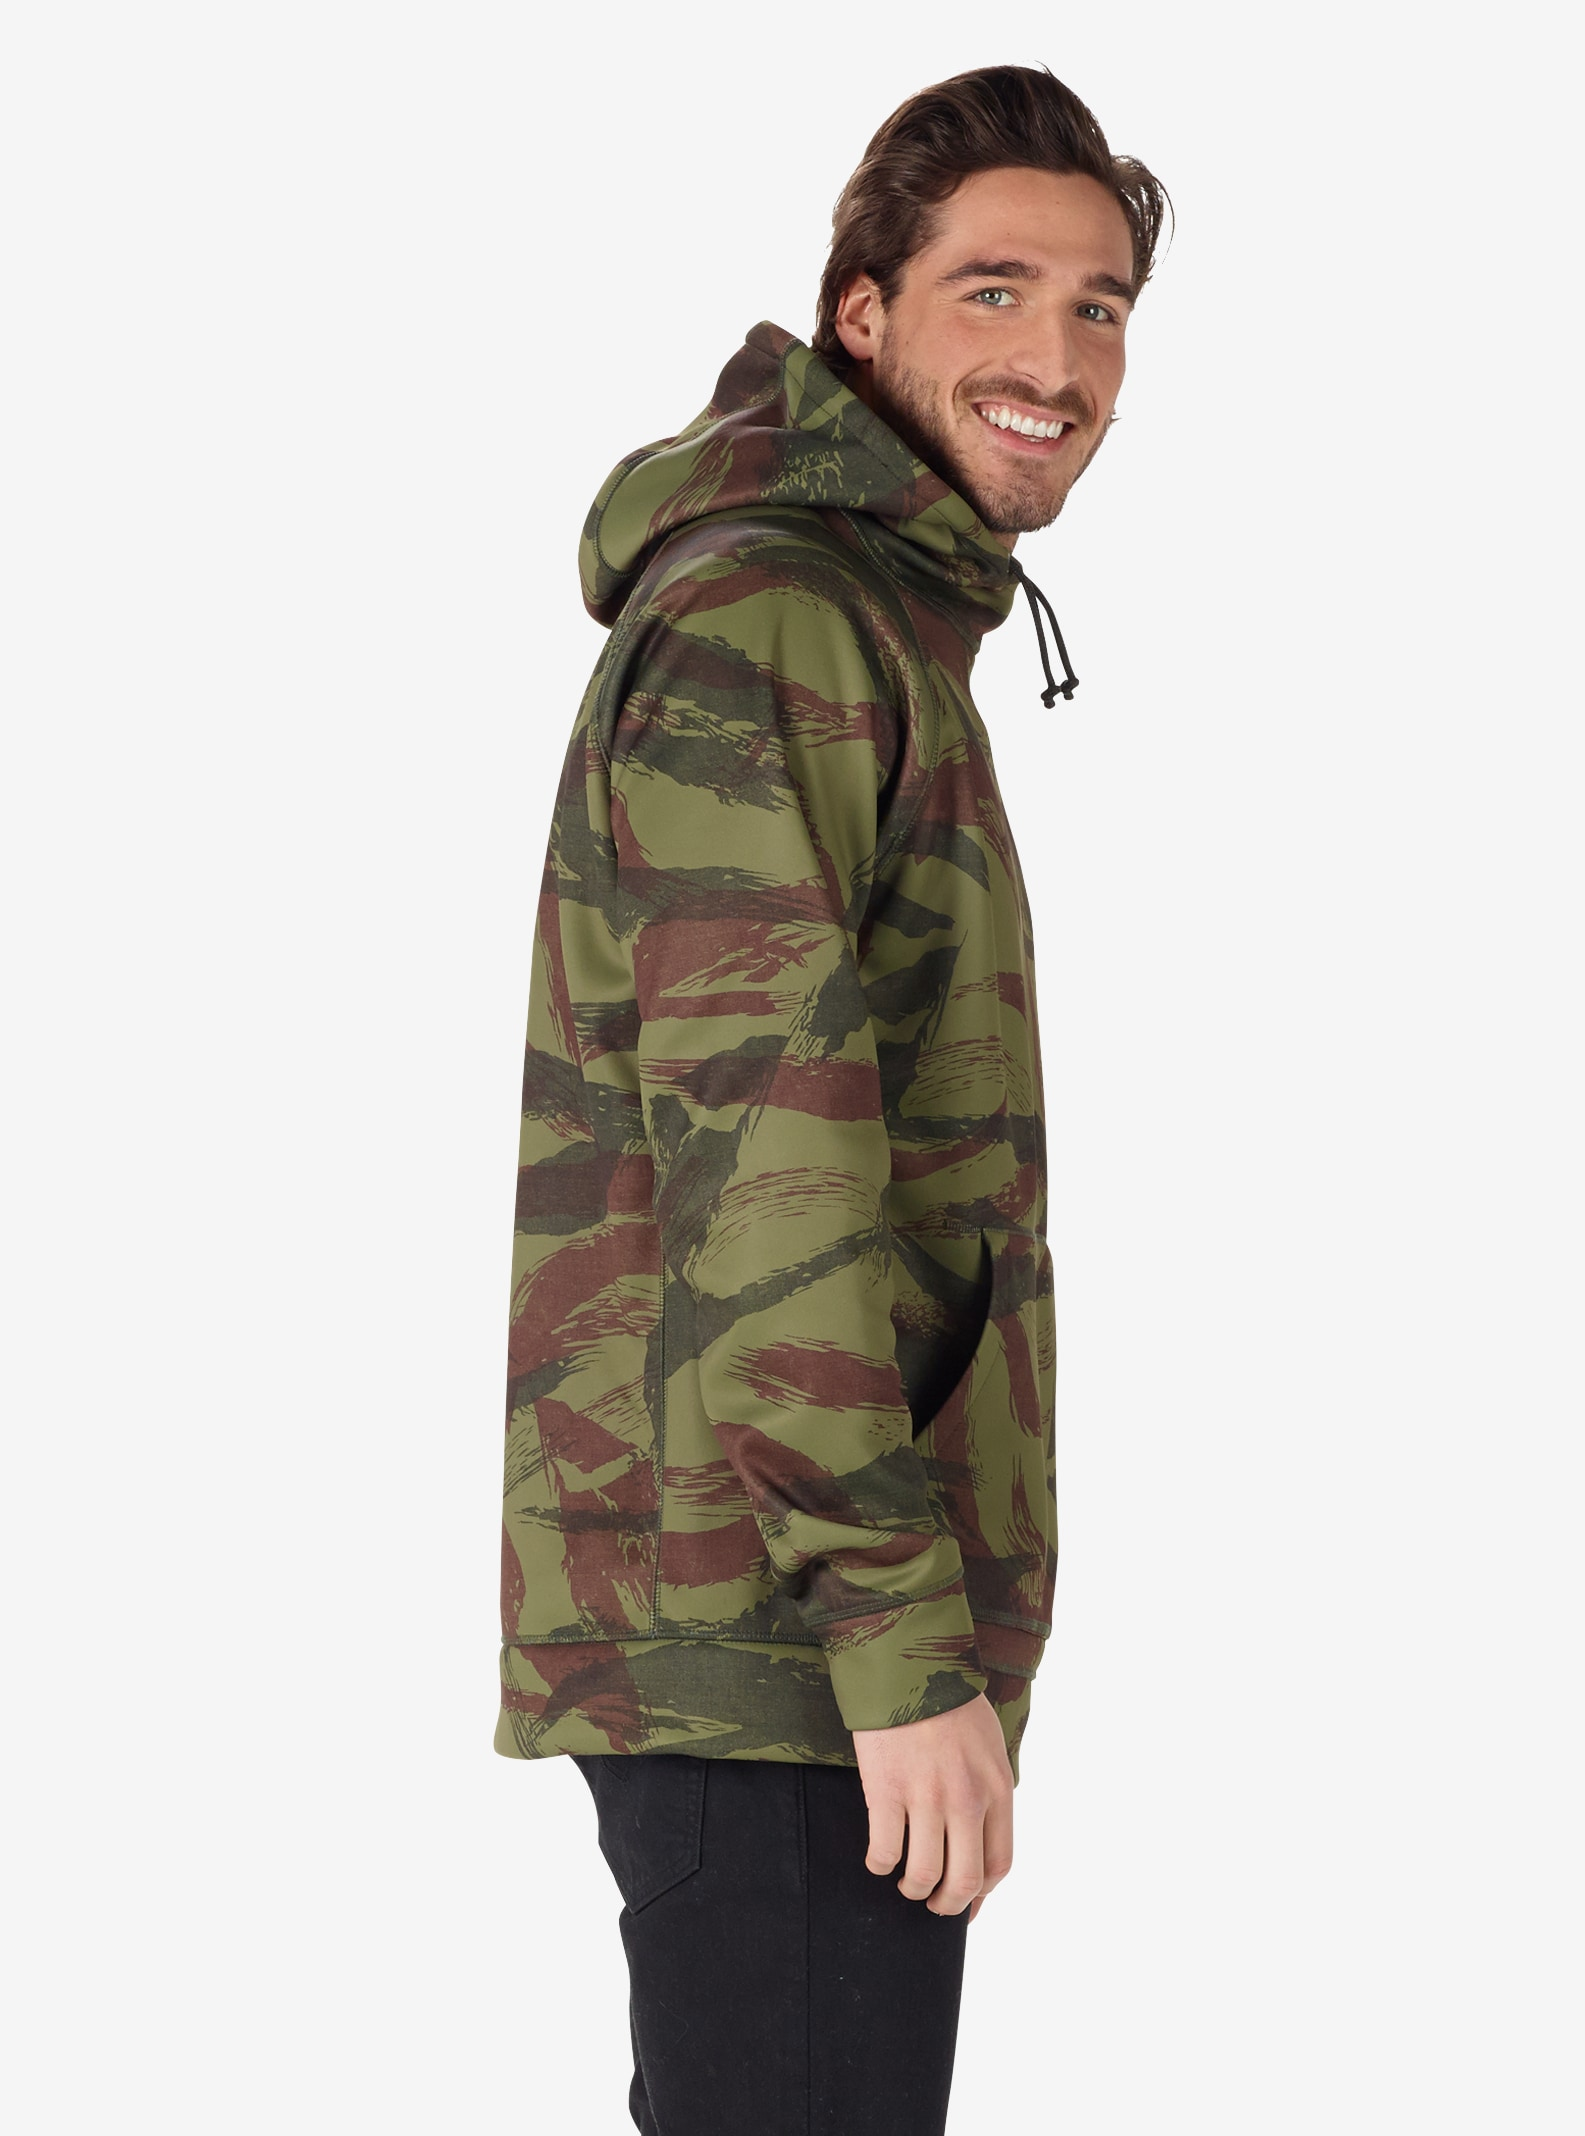 Men's Burton Crown Bonded Pullover Hoodie shown in Brush Camo